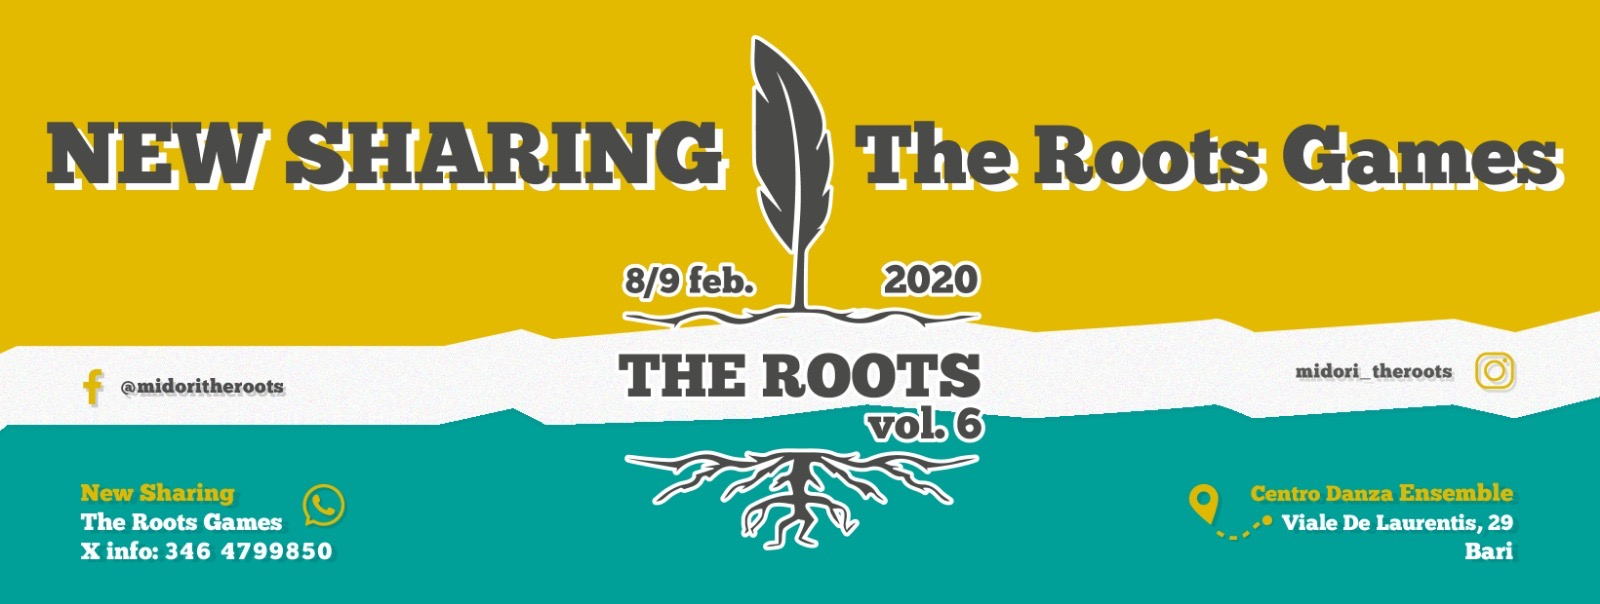 The Roots vol. 6